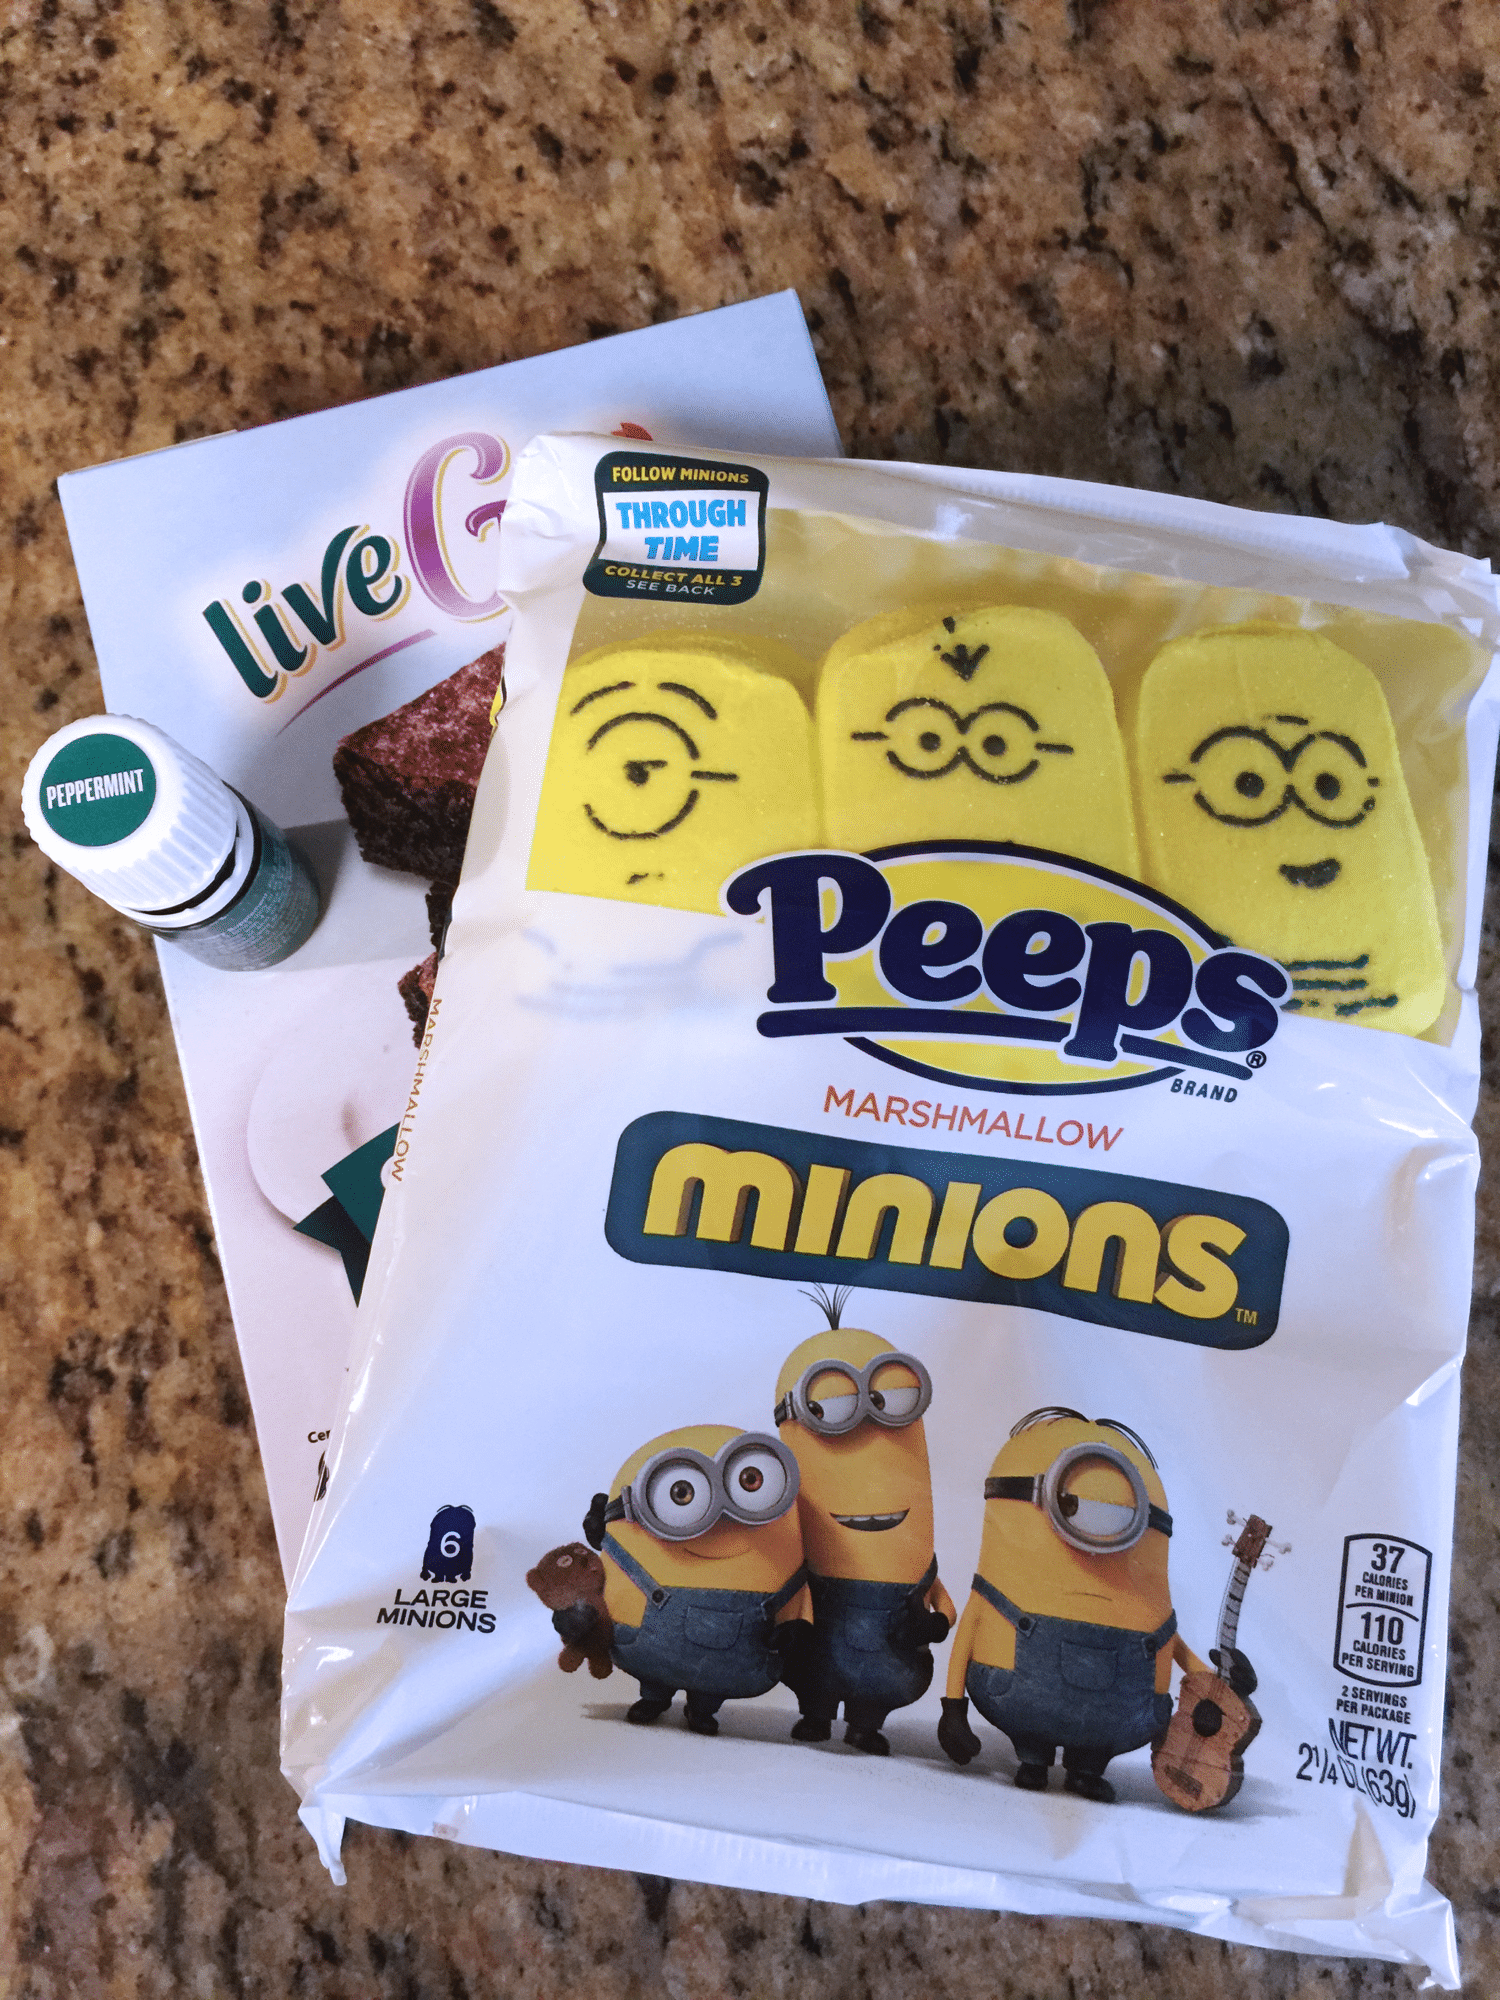 peppermint marshmallow brownies | Minions PEEPs Minions DVD giveaway